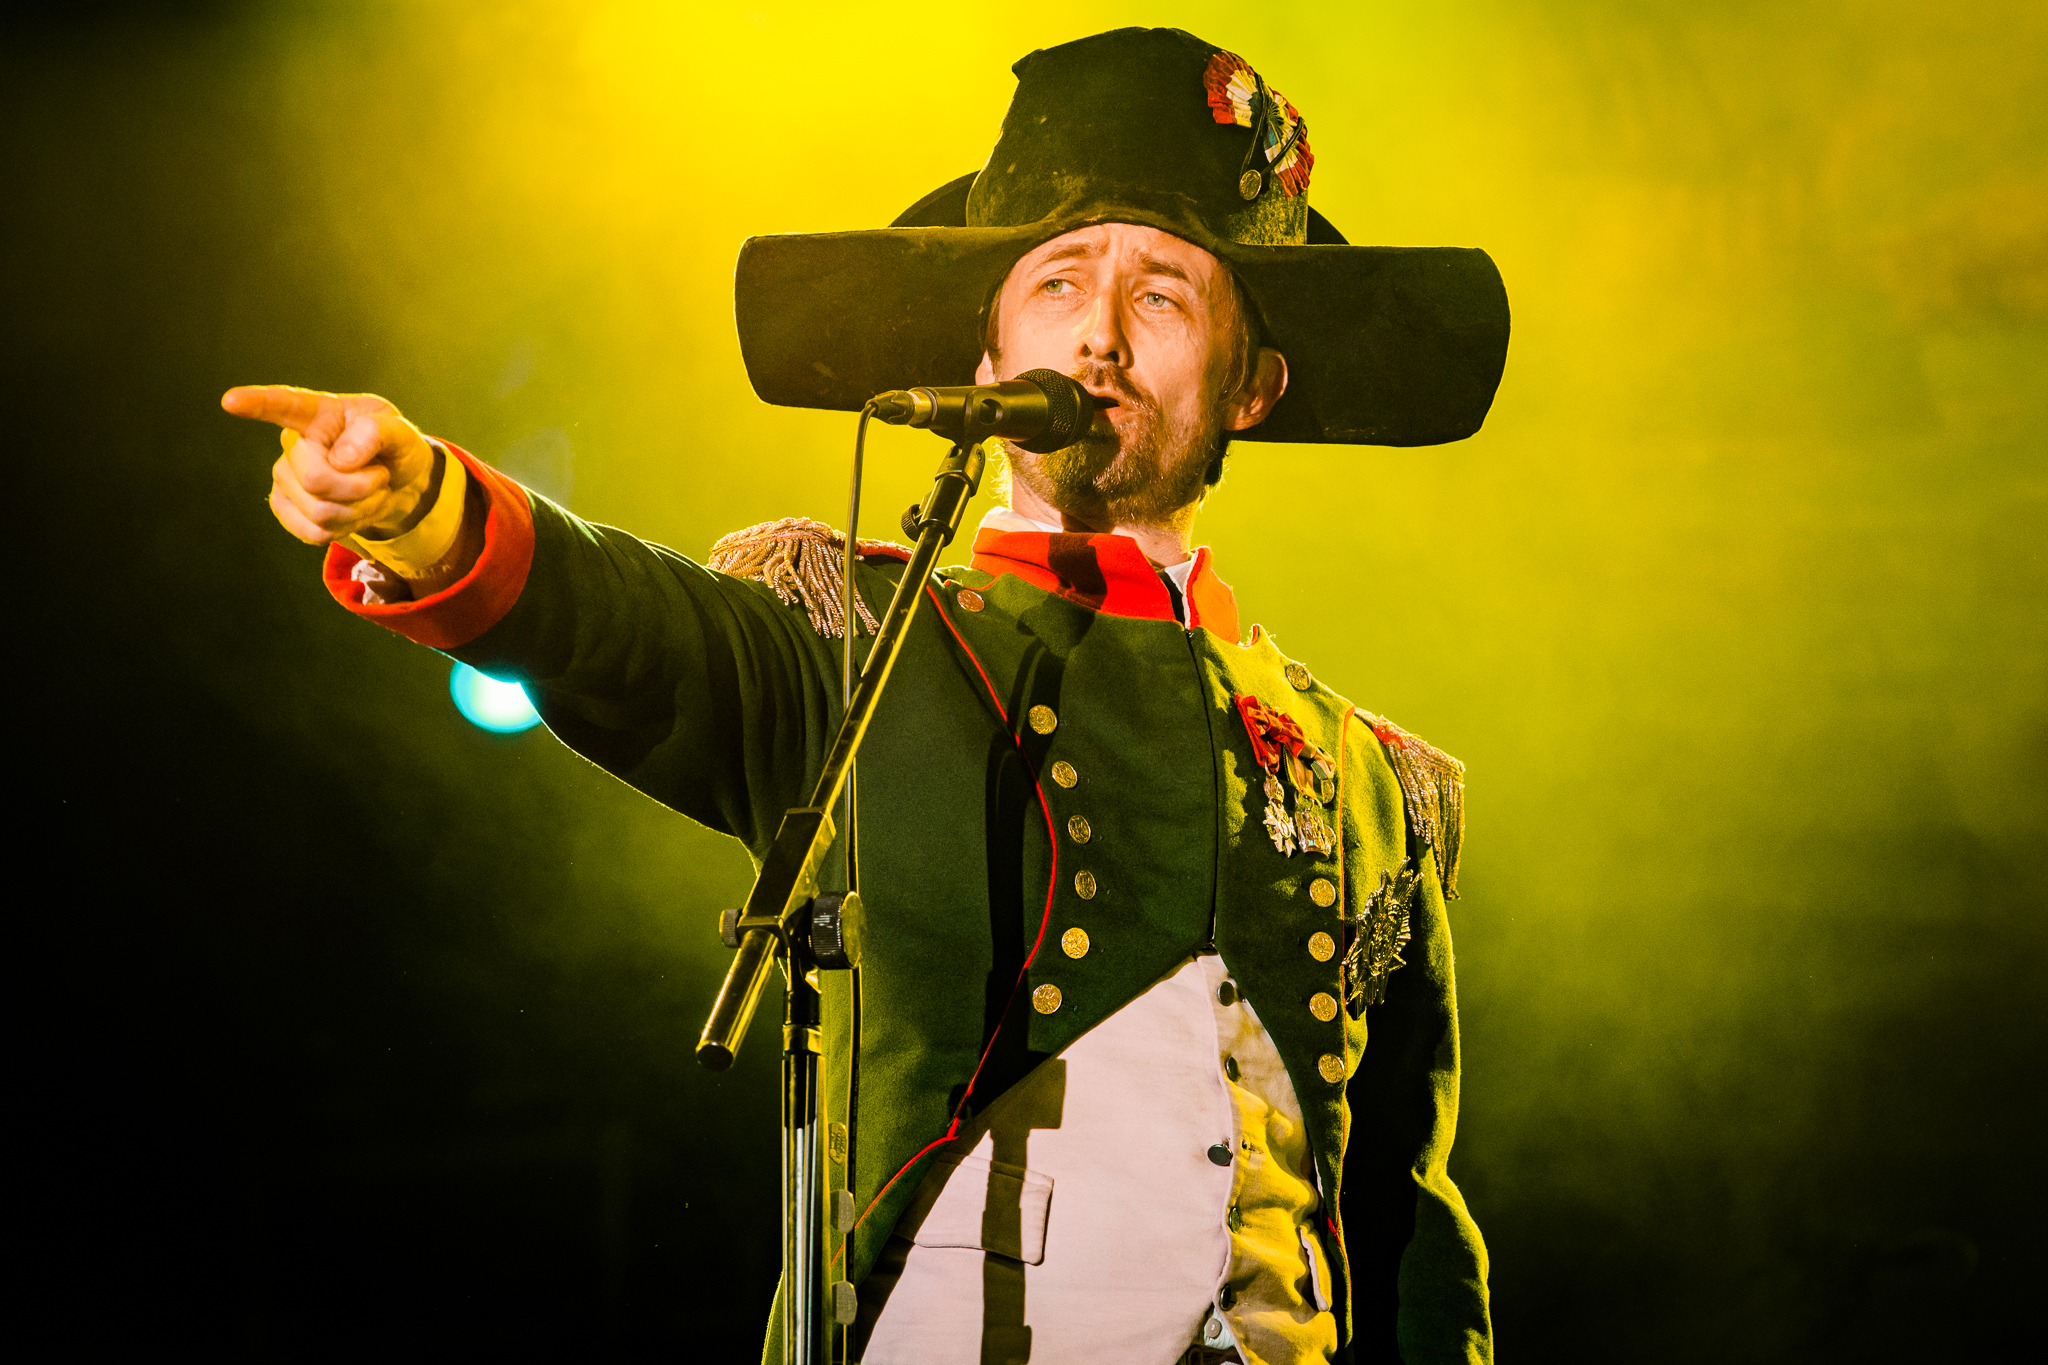 The Divine Comedy @ Fairport's Cropredy Convention (Cropredy, England)